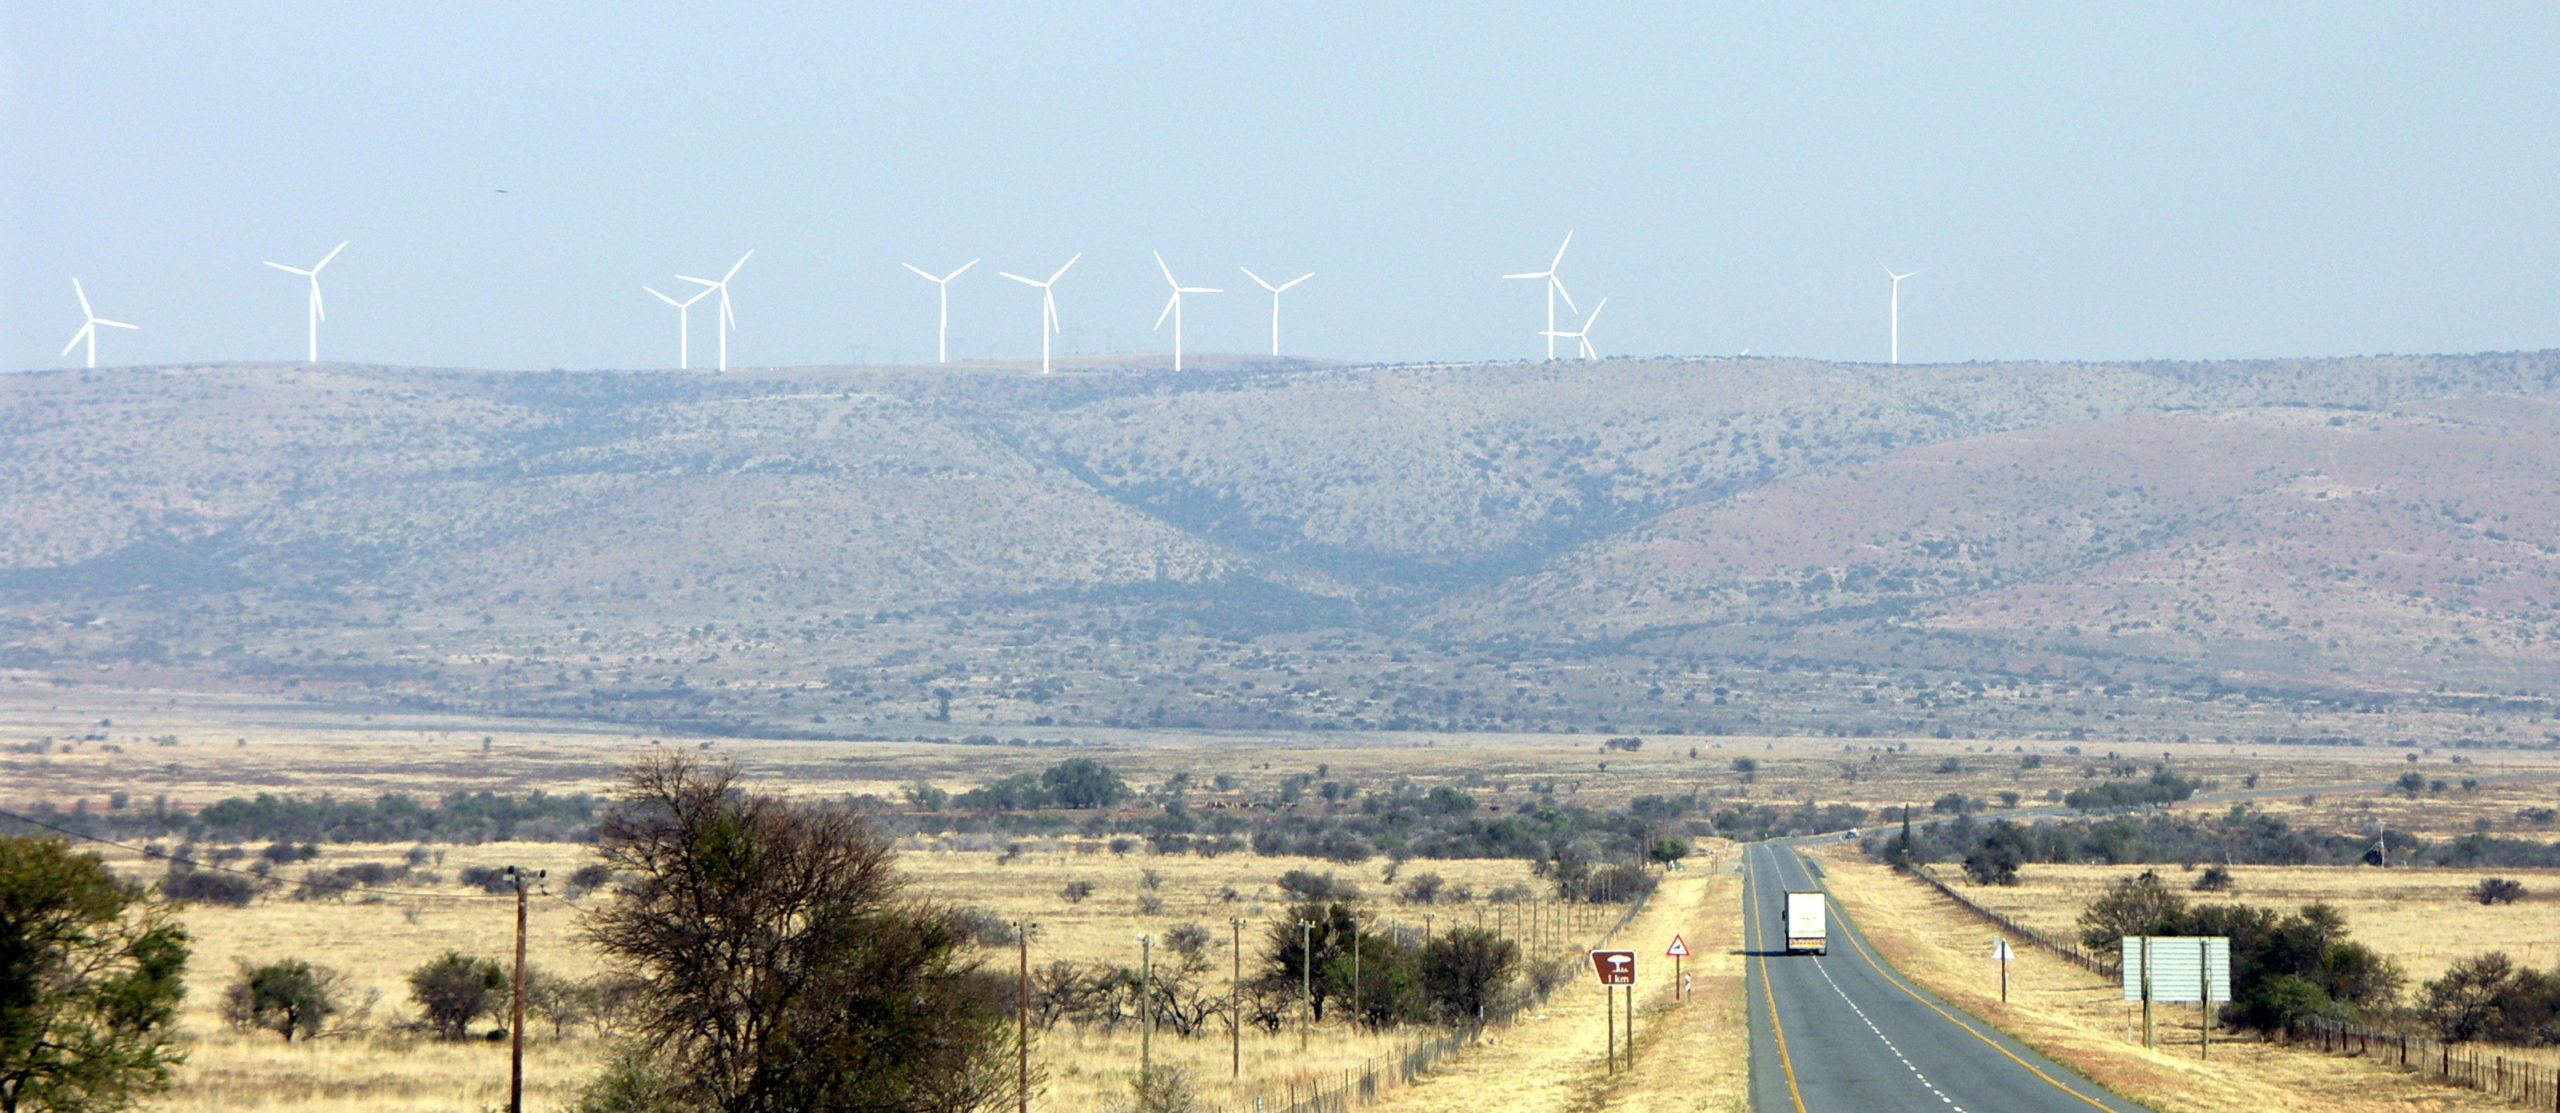 Wikimedia Commons – Cookhouse Wind Farm